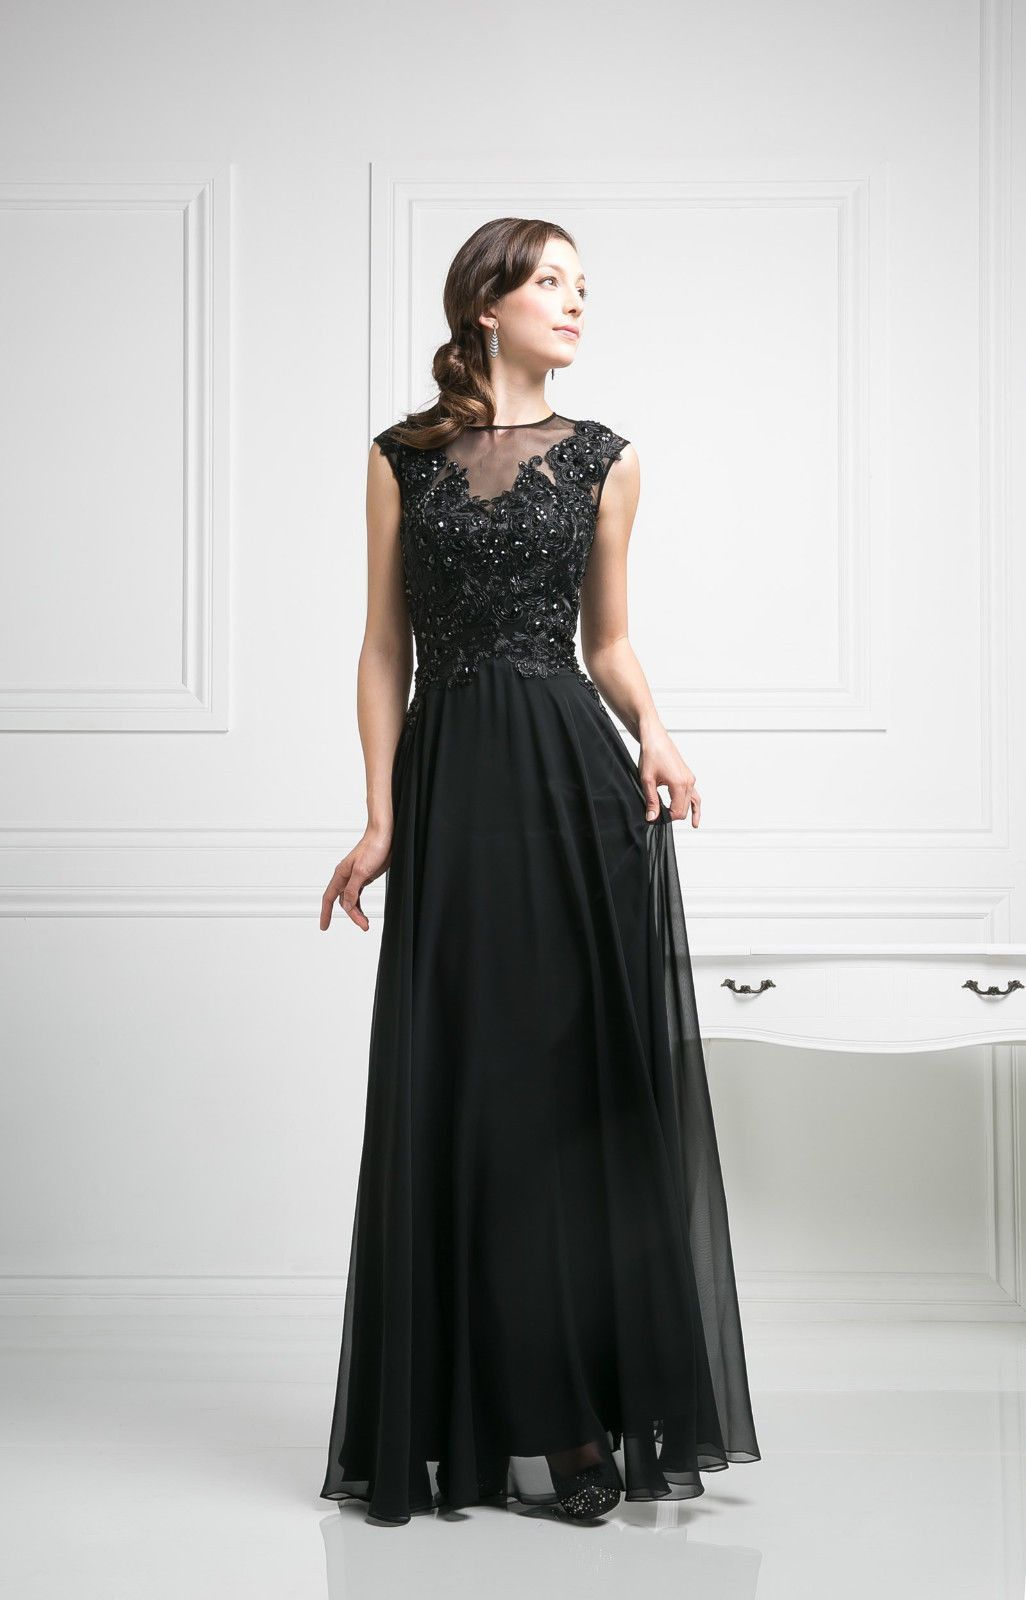 Black mother of the bride formal dress plus size beaded dresses